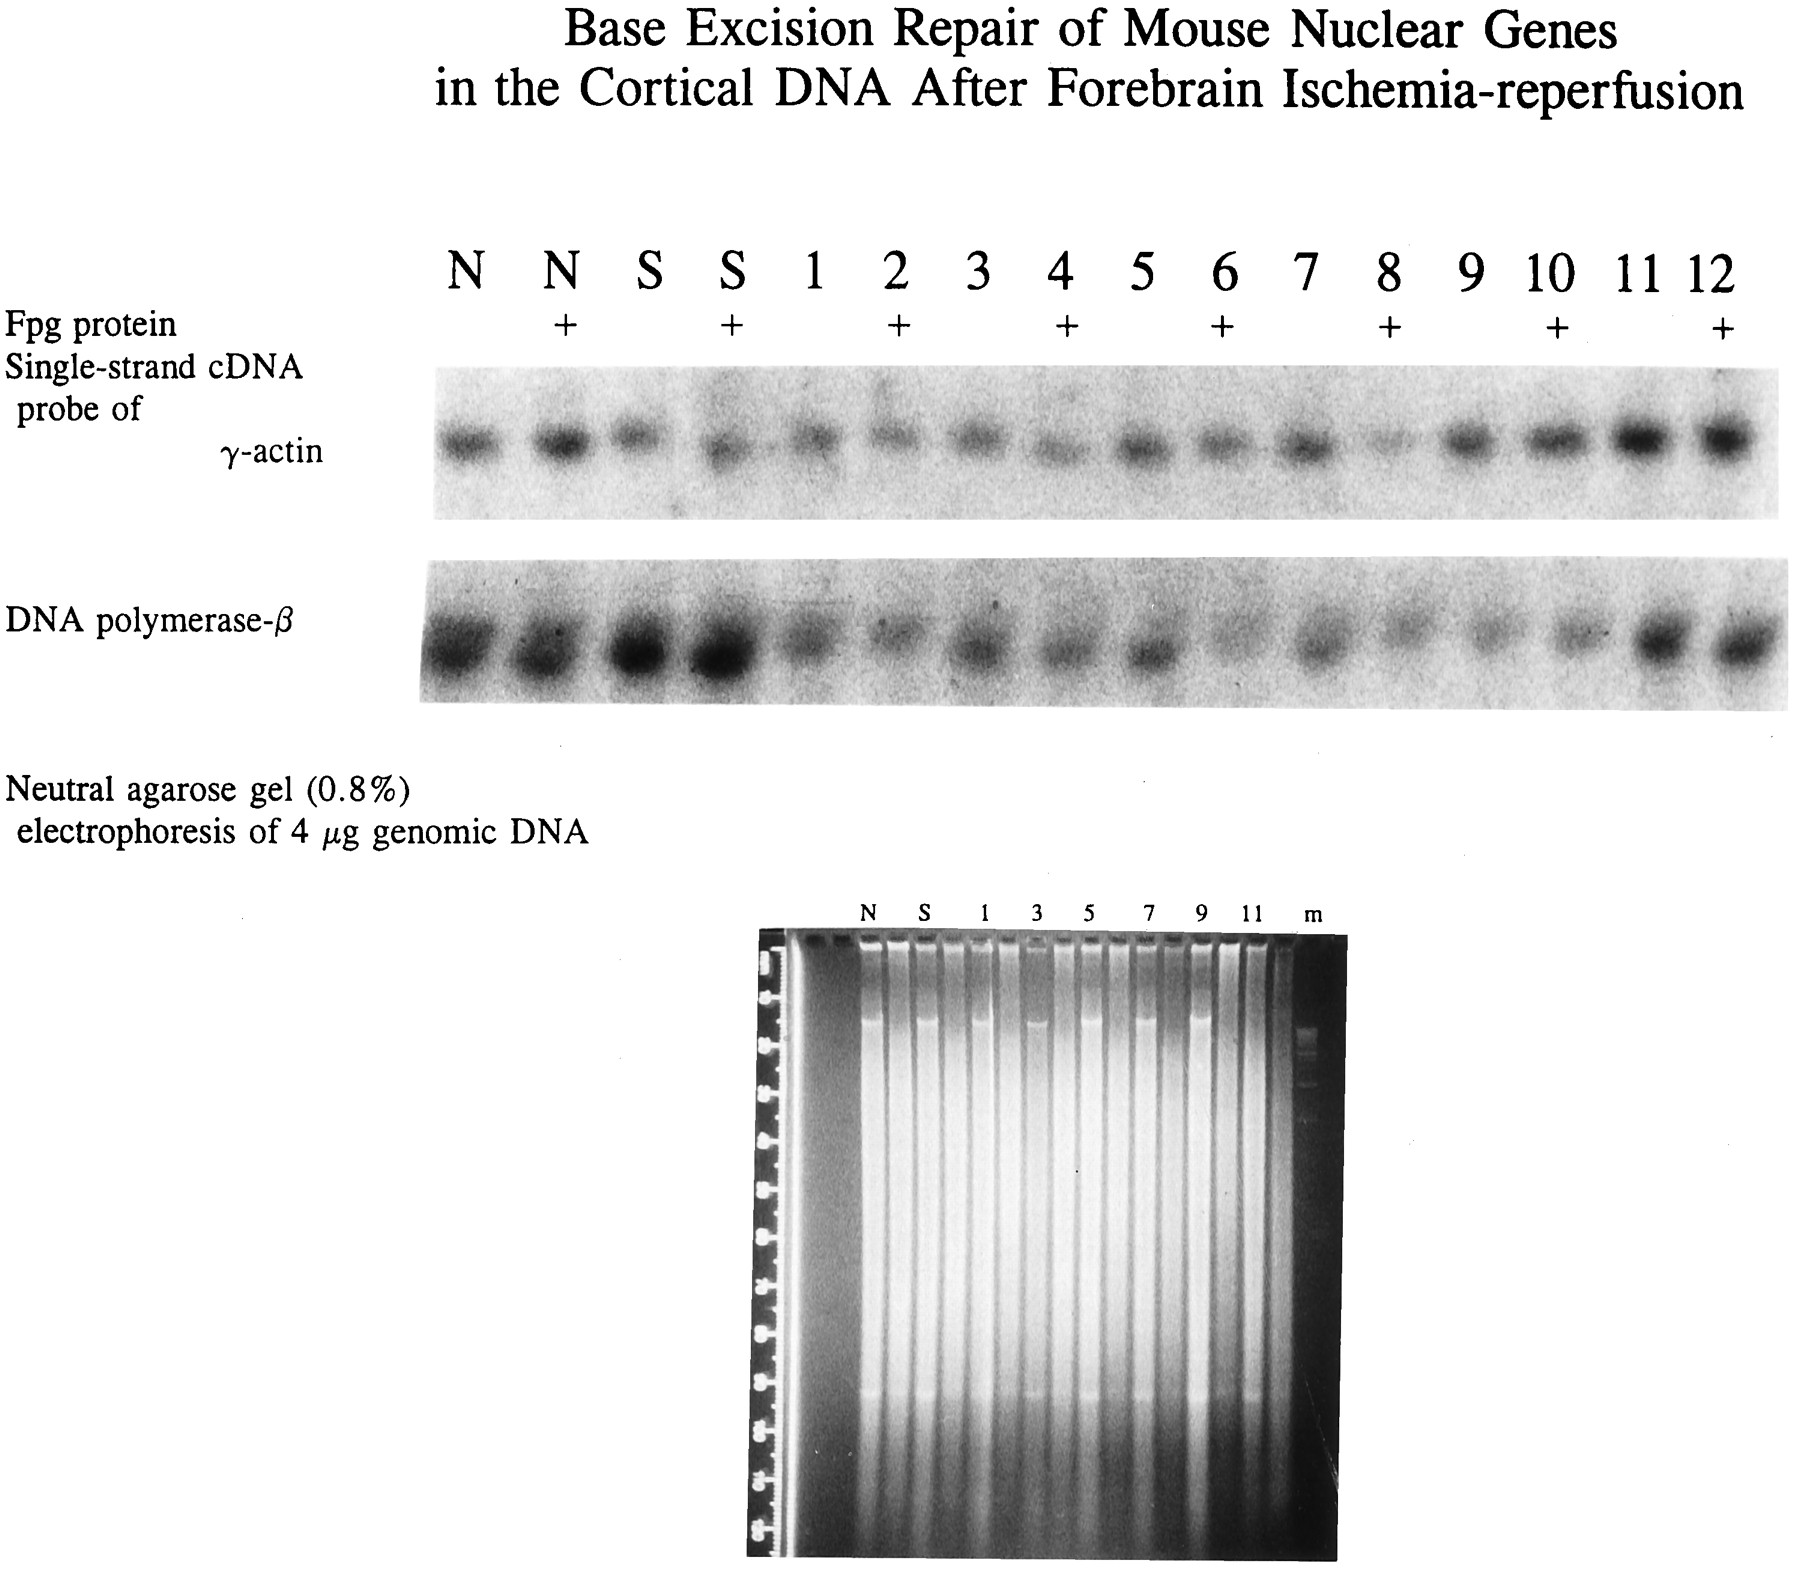 damage repair and mutagenesis in nuclear genes after mouse